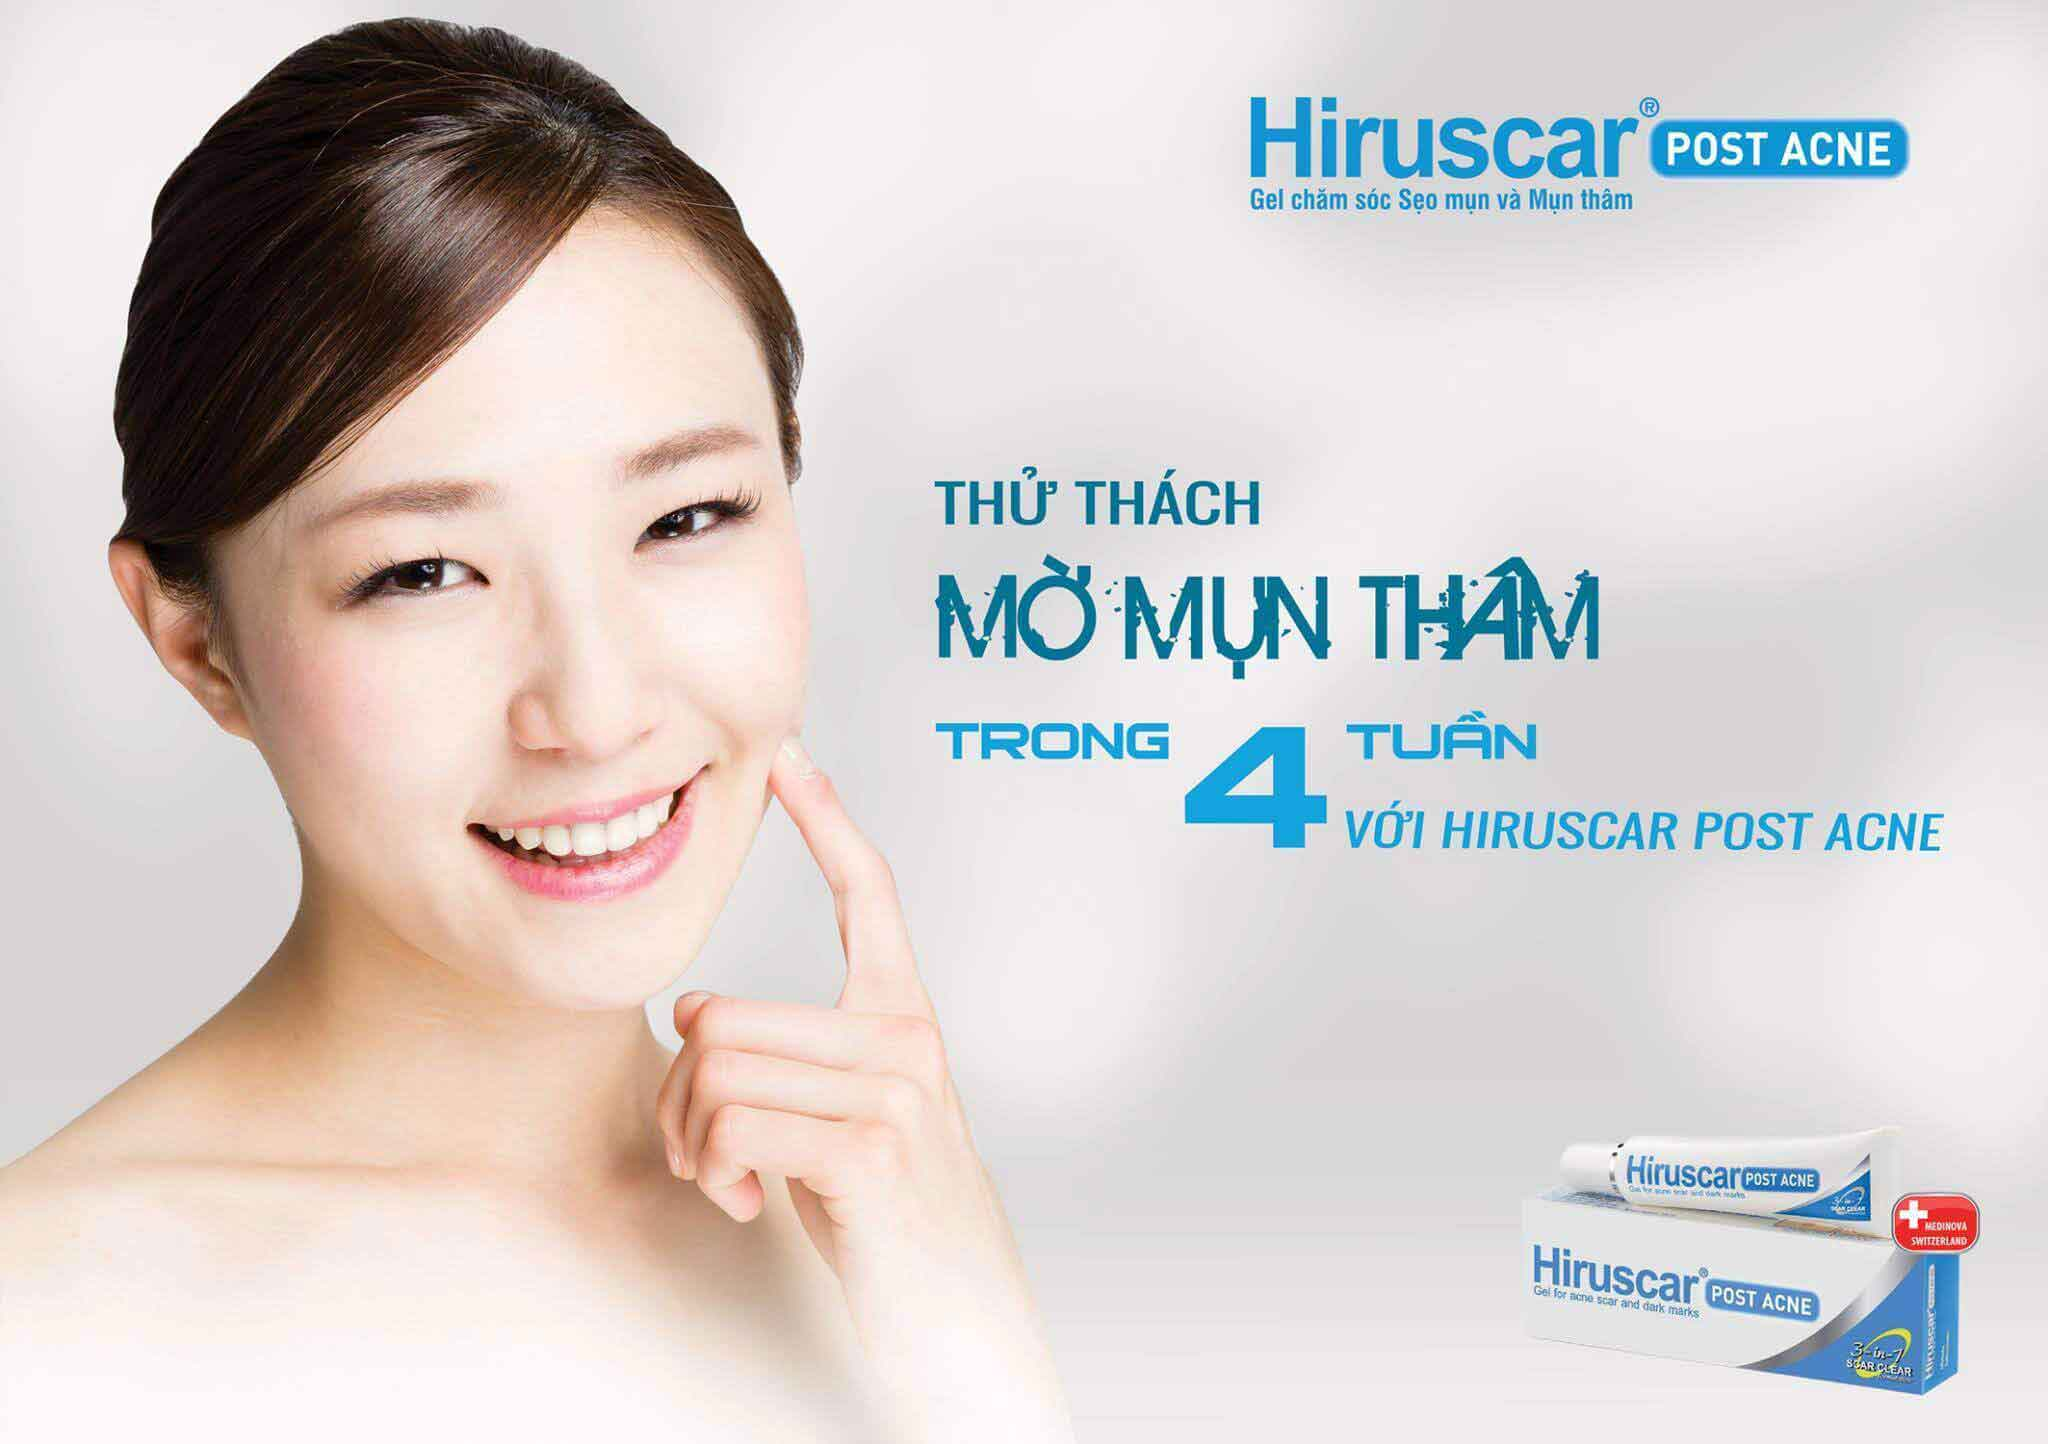 Hiruscar Post Acne Gel 5g